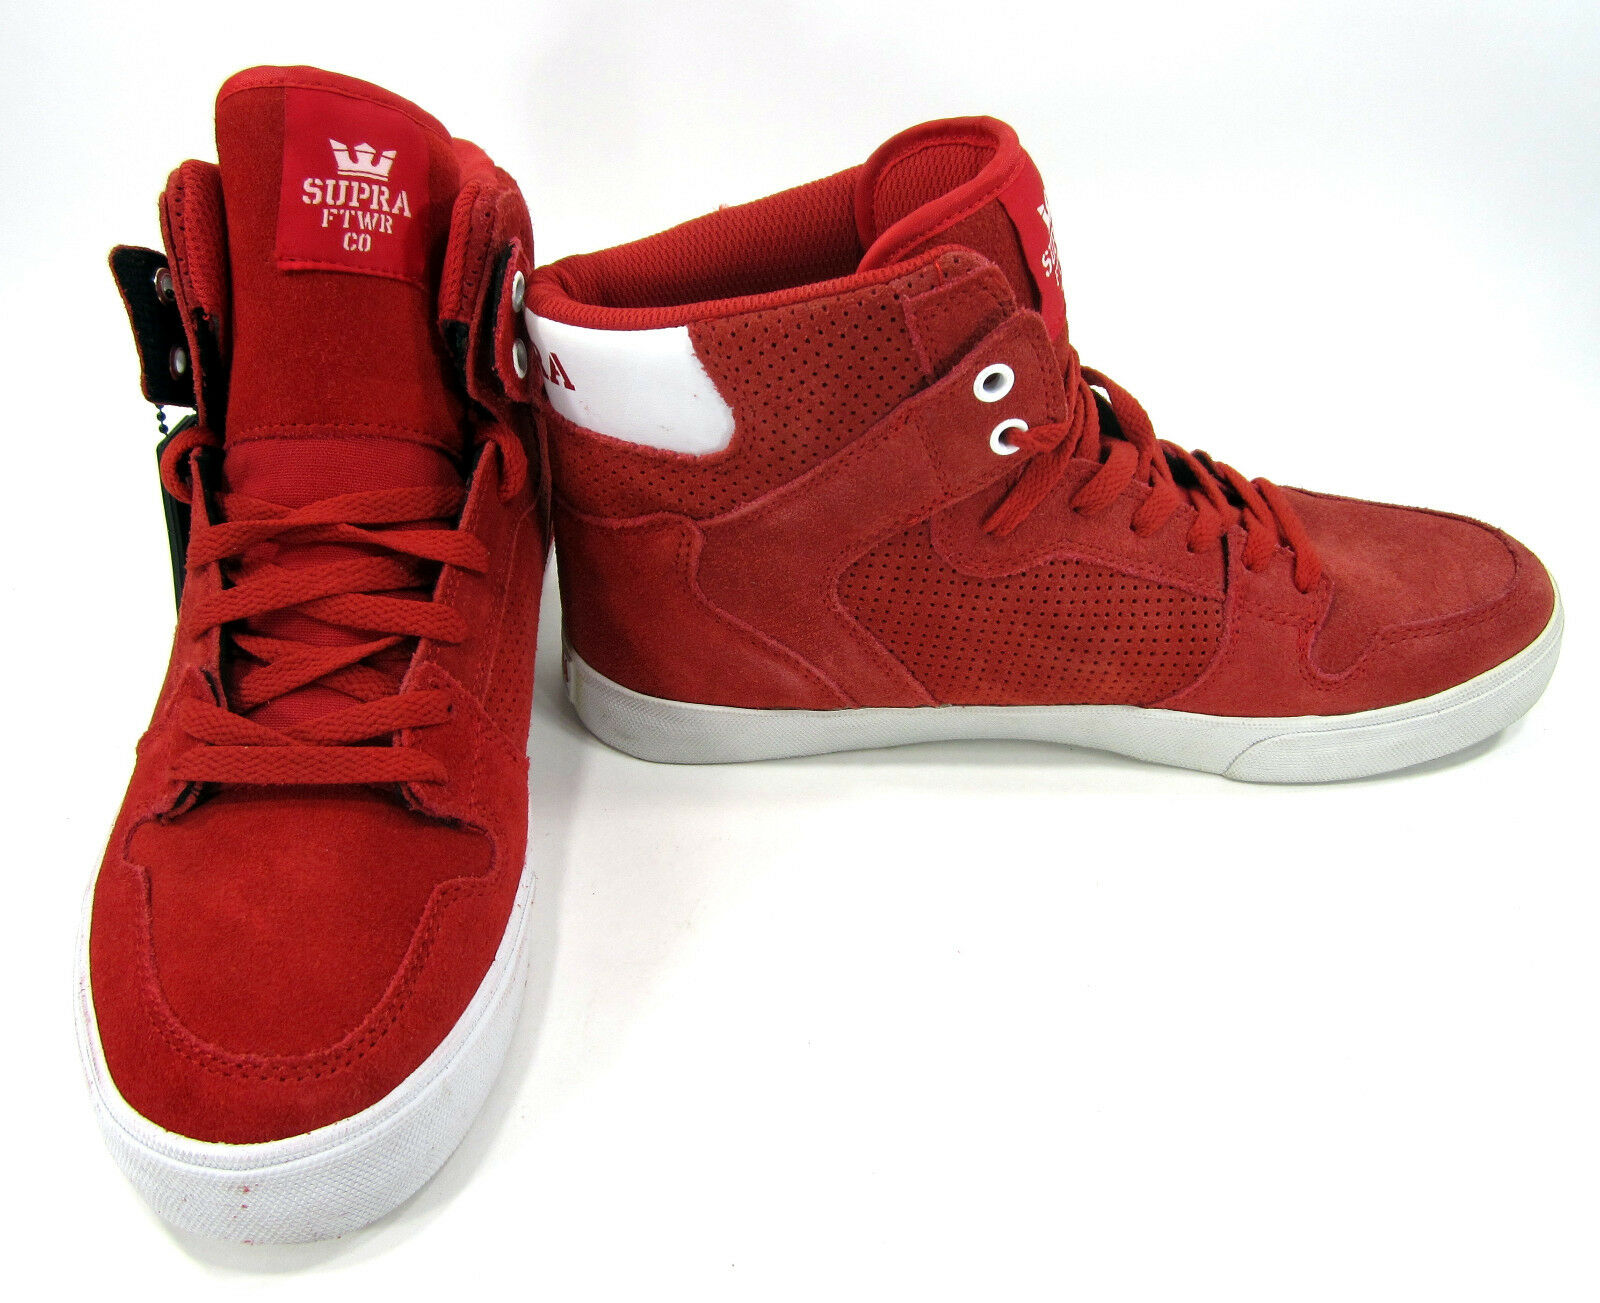 Supra Footwear Shoes Vaider Hi Suede Red/White Sneakers Size 9  .5